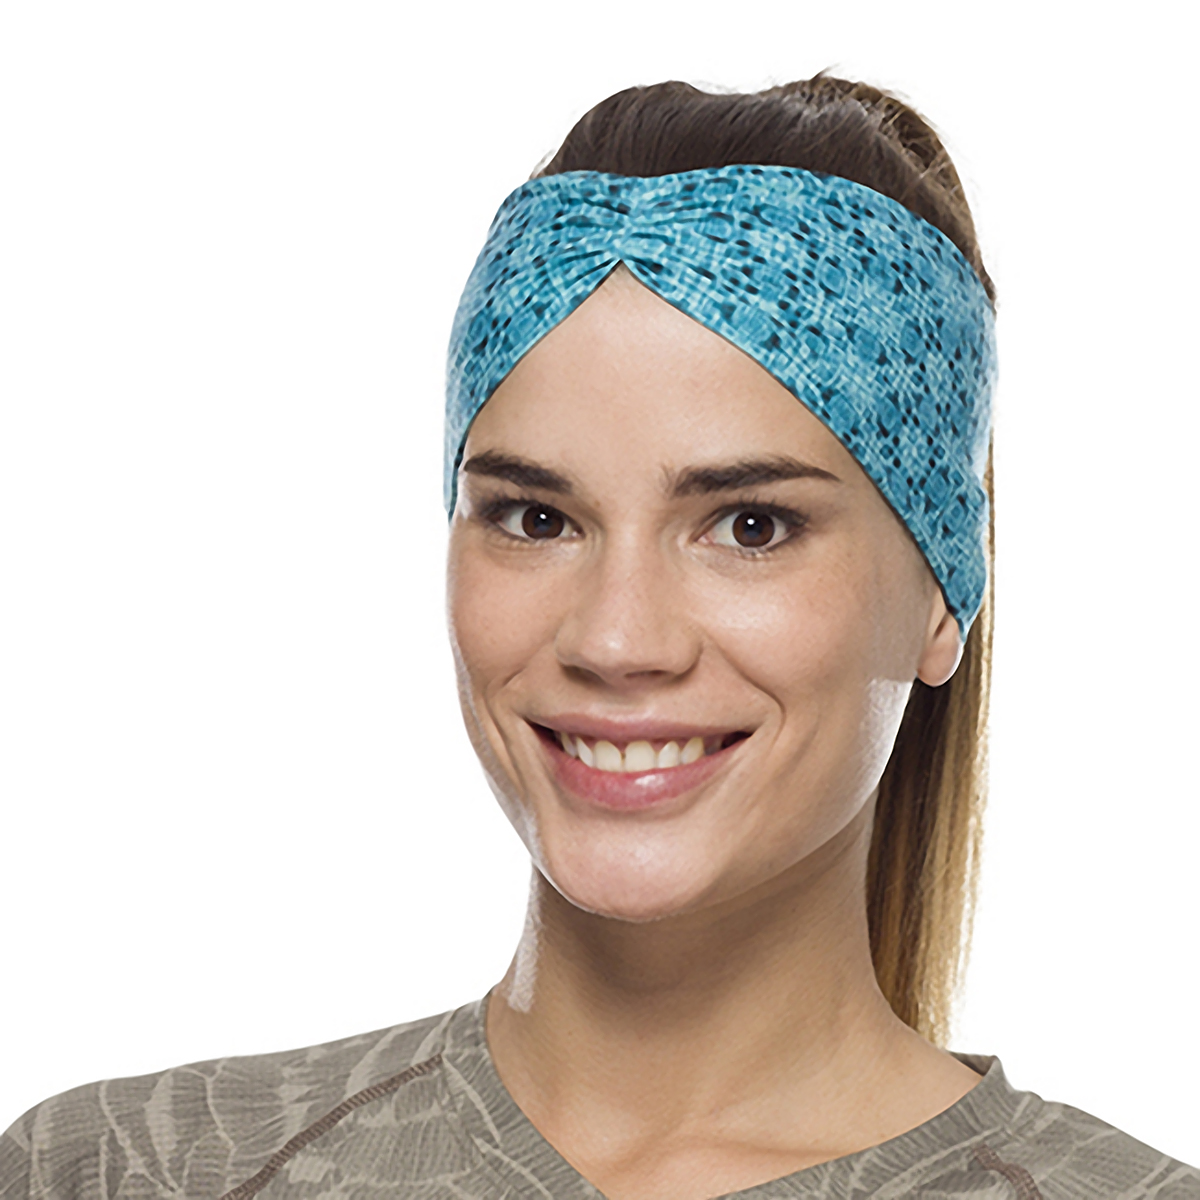 Buff Coolnet UV+ Tapered Headband - Color: Balmor Pool, Balmor Pool, large, image 3